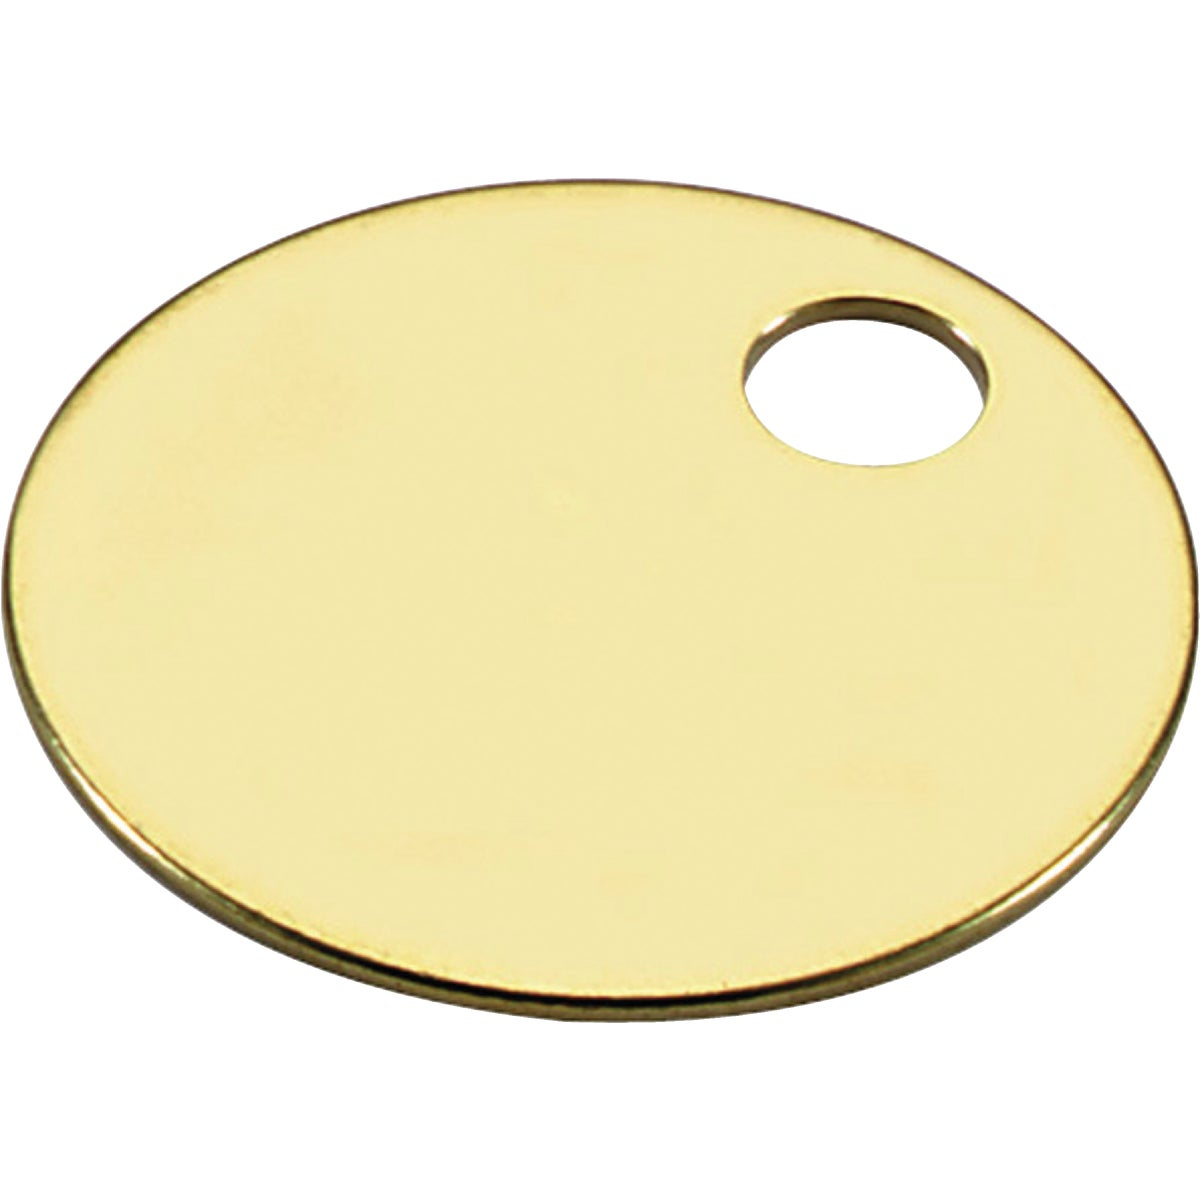 "100PC 1-1/4"" BRASS TAG - 26012 by Lucky Line Prod Inc"